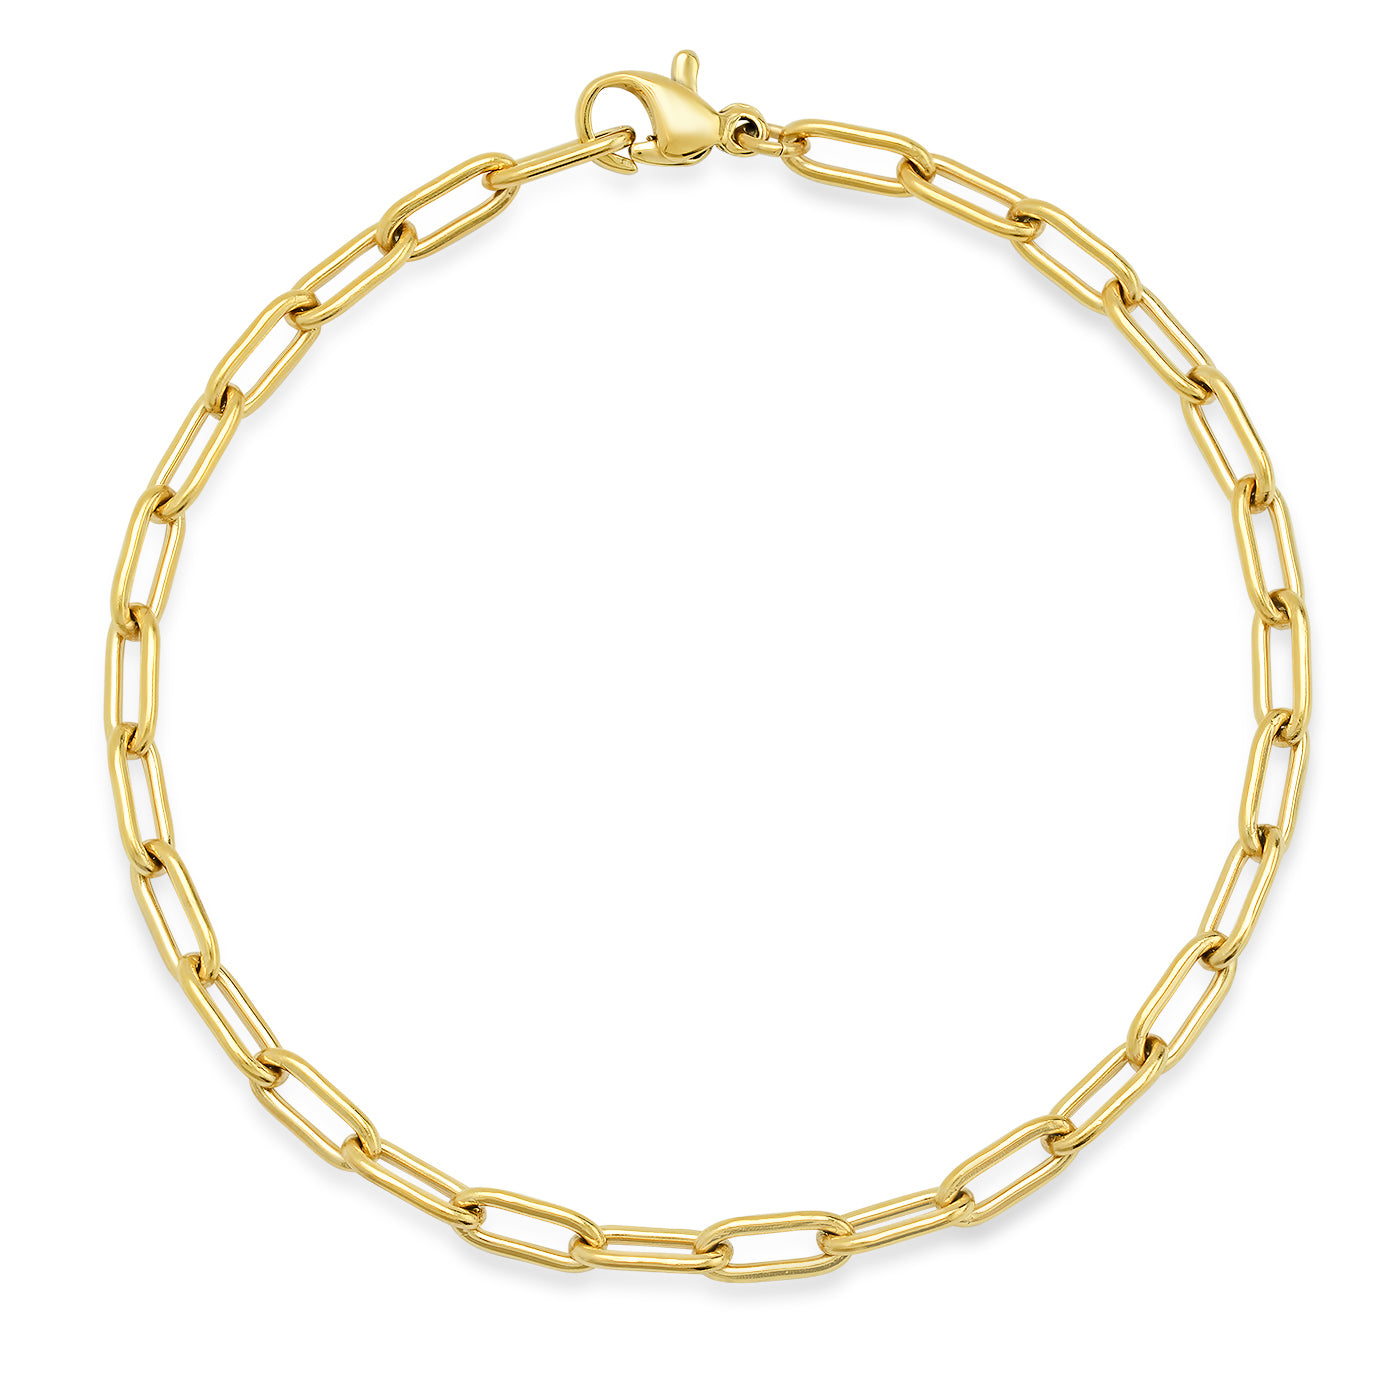 Small Oval Cable Link Chain Bracelet